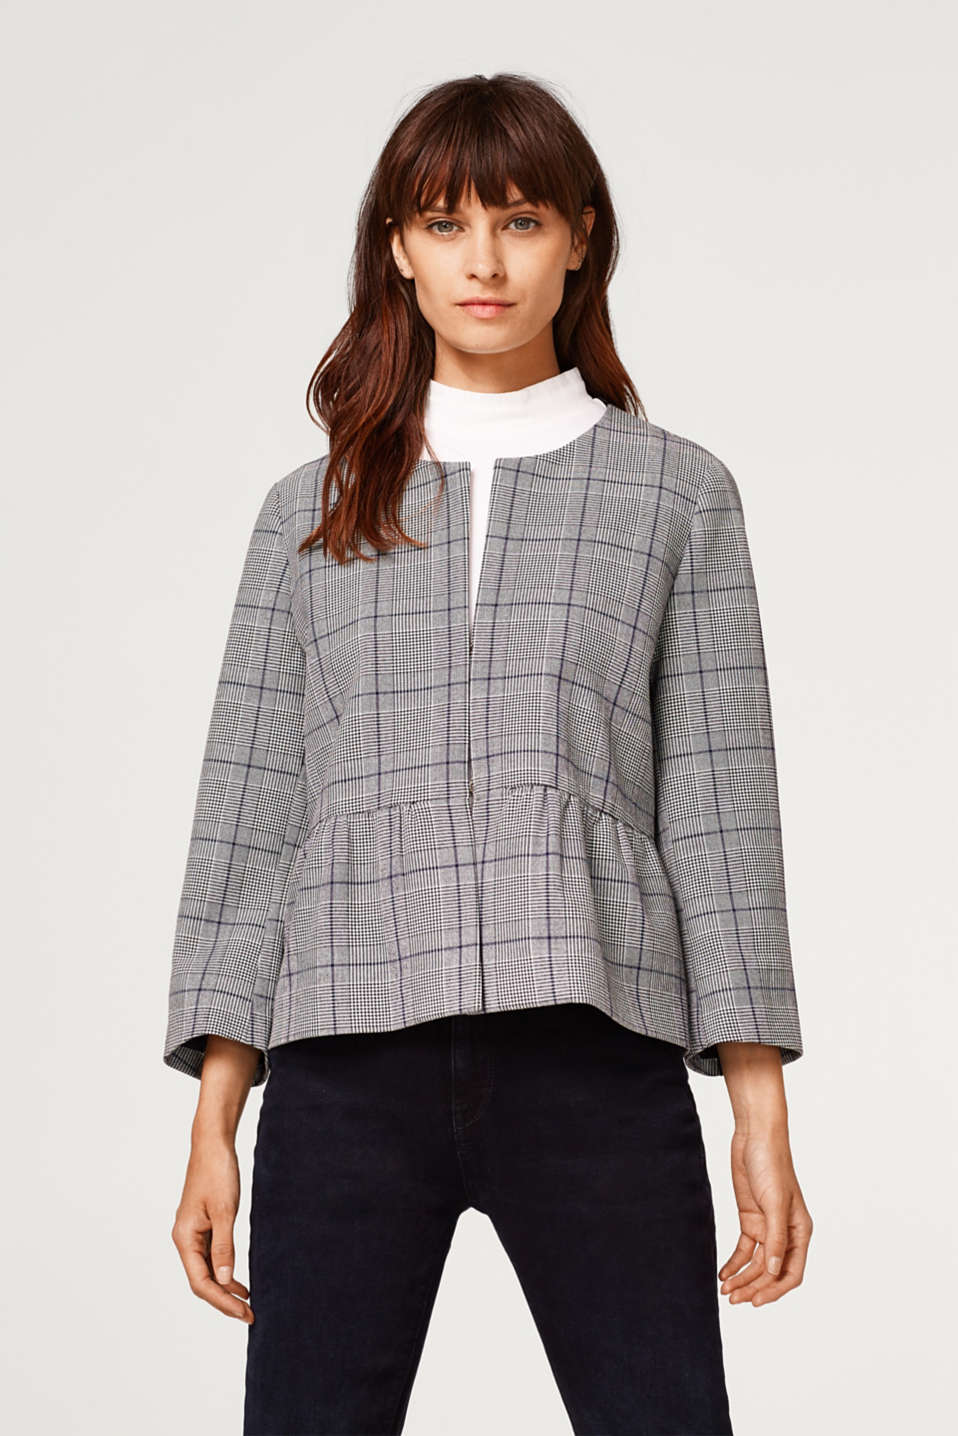 Esprit - Stretch blazer with glencheck pattern and peplum